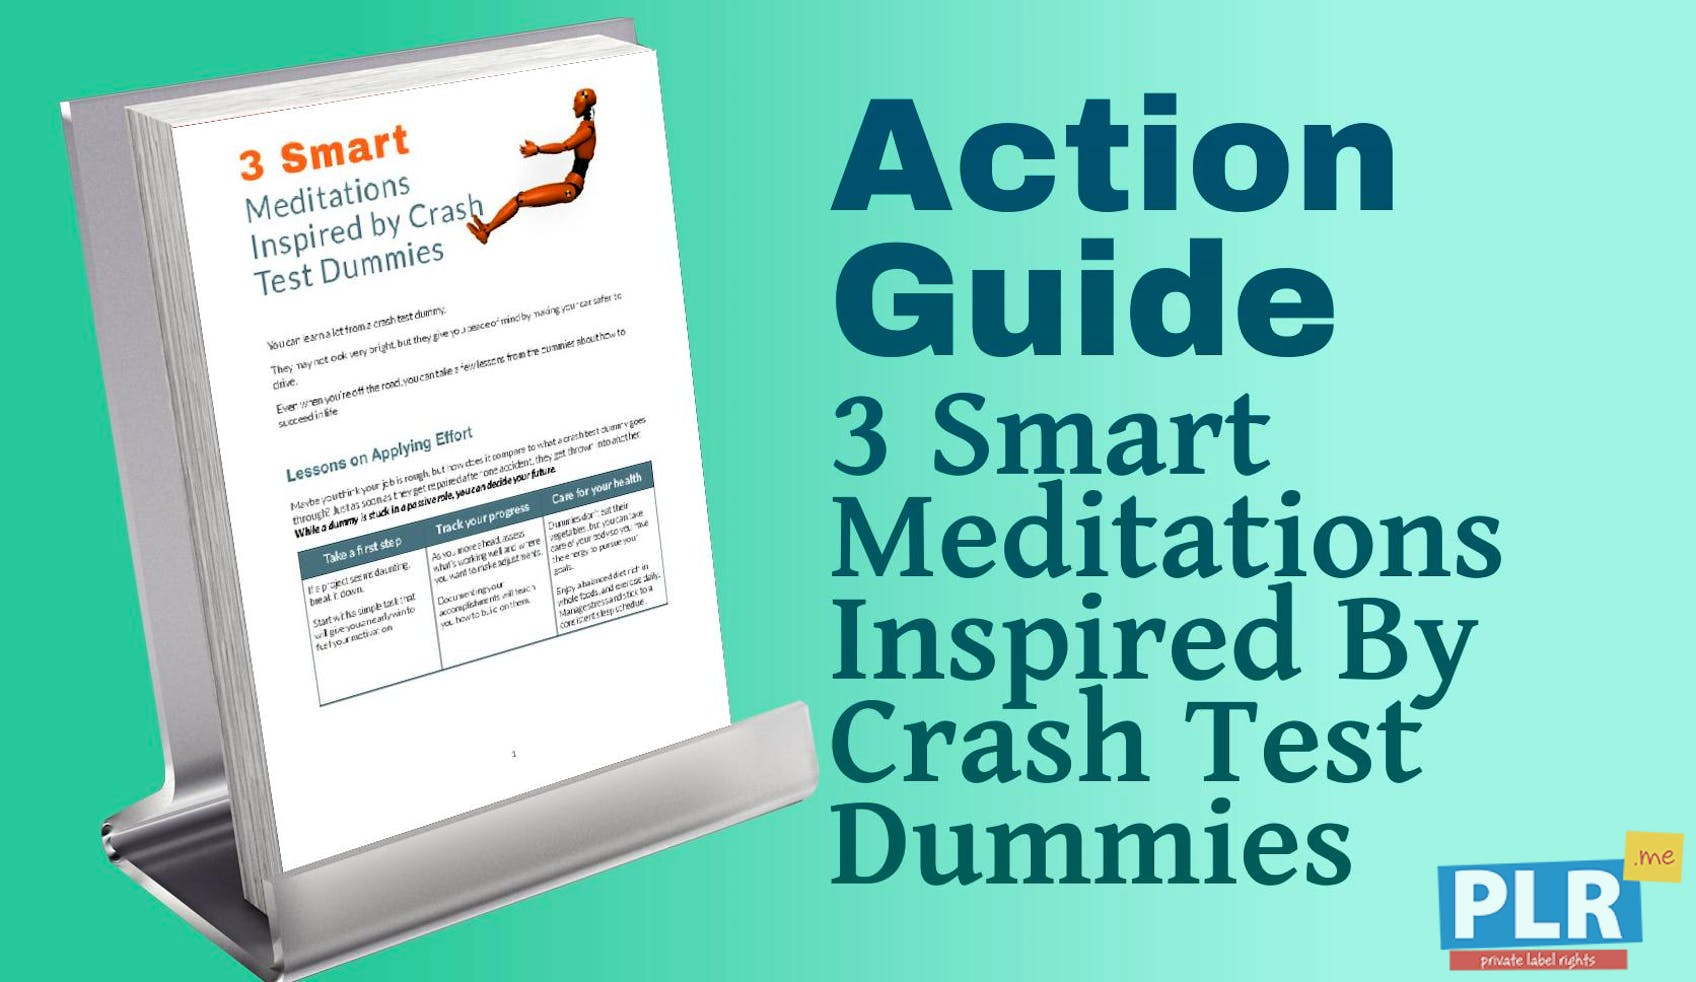 3 Smart Meditations Inspired By Crash Test Dummies